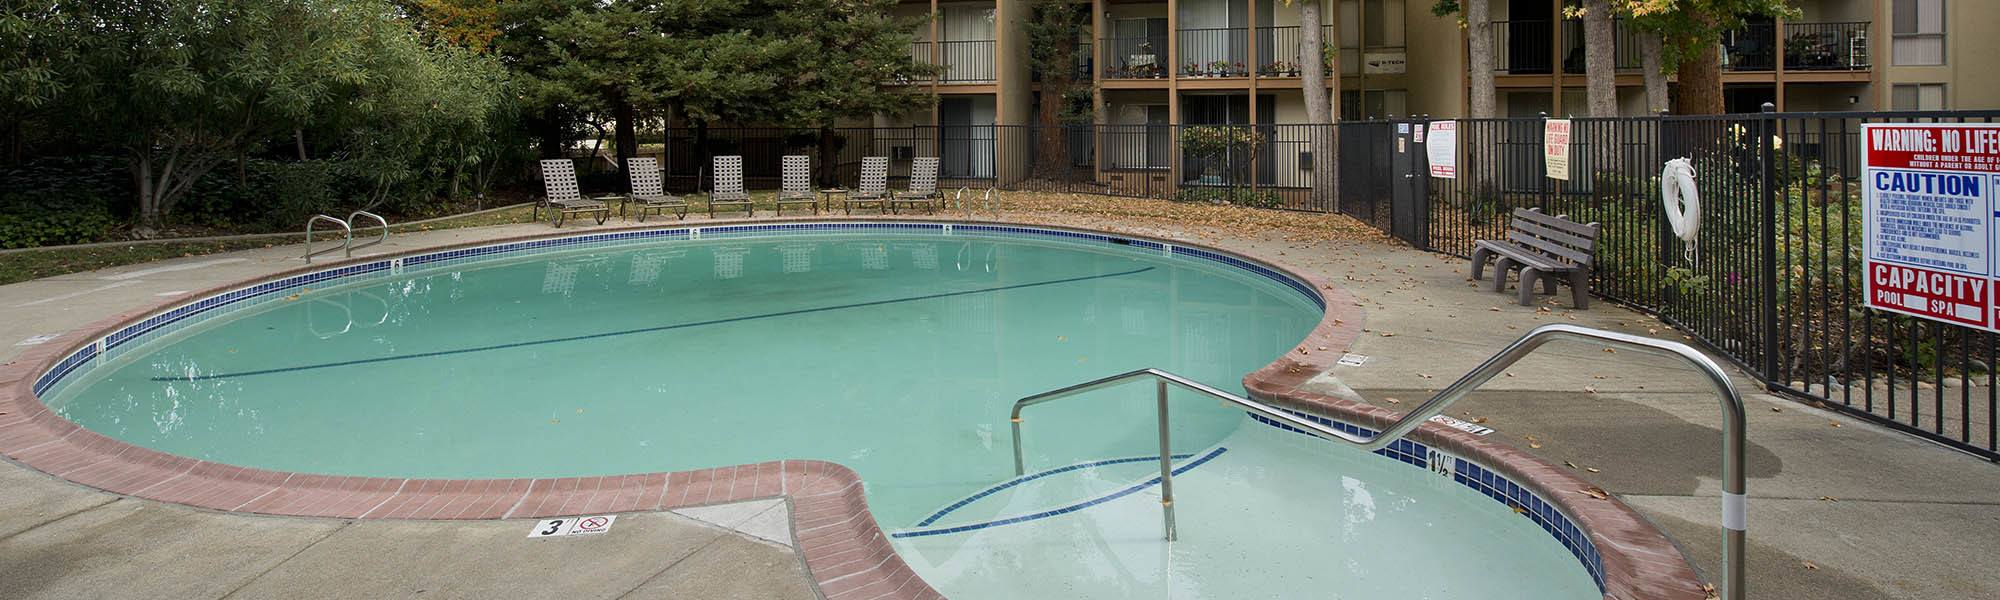 Programs at Venu at Galleria Condominium Rentals in Roseville, California